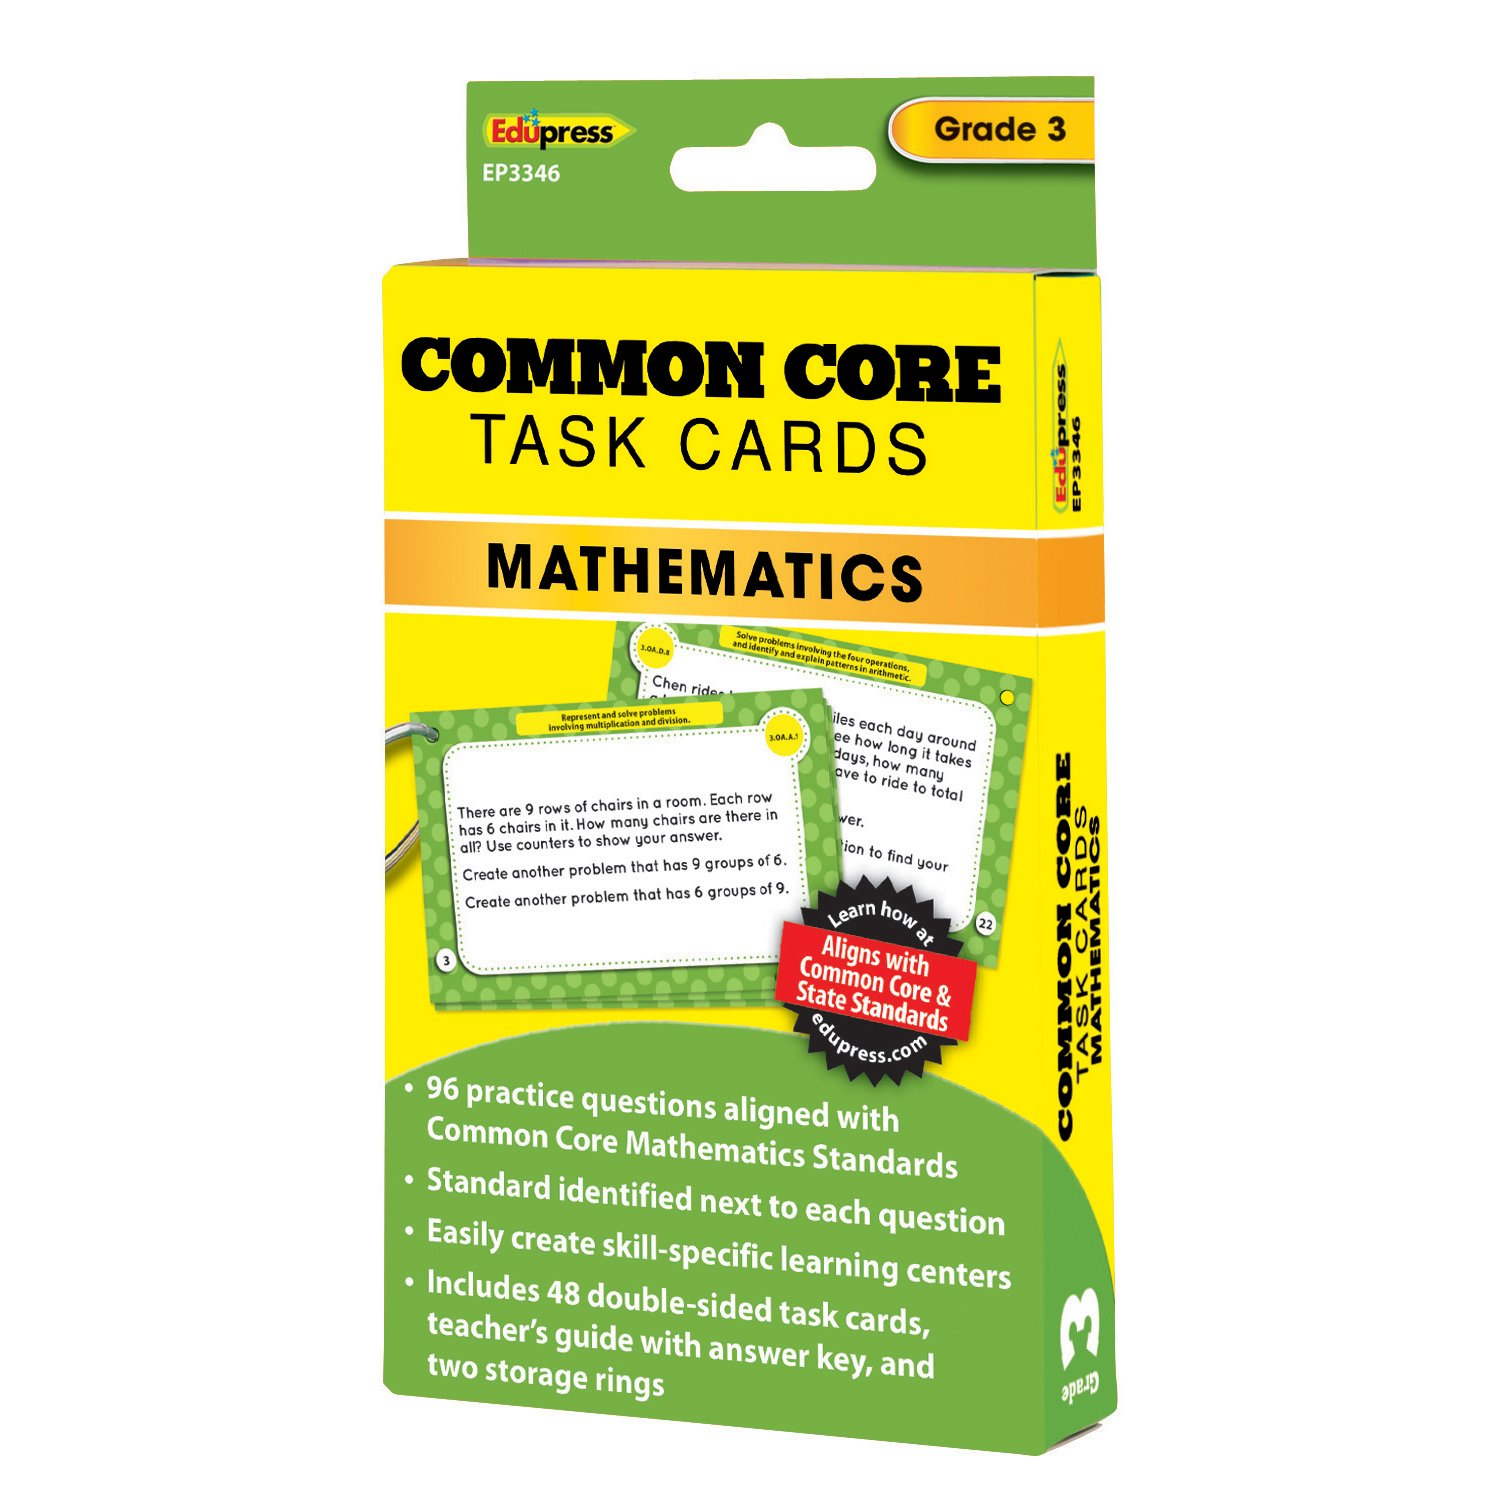 Amazon.com : Edupress Common Core Task Cards, Math, Grade 4 (EP63347 ...